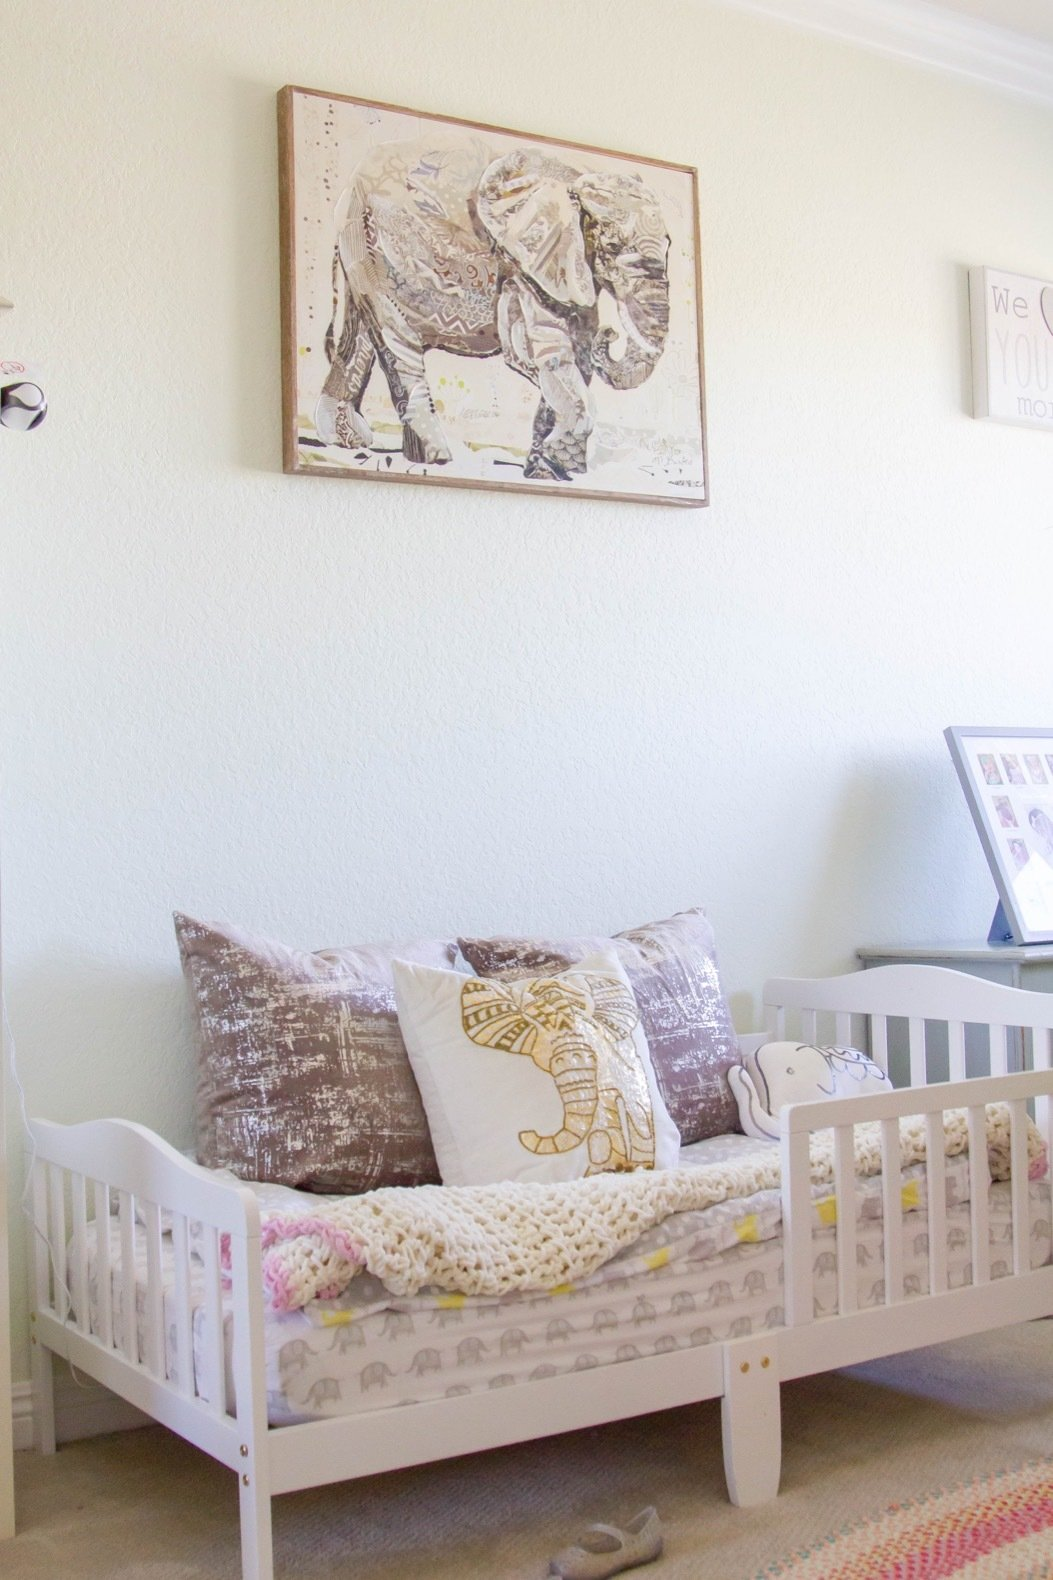 Kids, Rug, Bedroom, Toddler, Carpet, Bed, and Neutral Sienna's room has a clear elephant motif throughout.  Kids Neutral Rug Carpet Photos from Budget Breakdown: A SoCal Couple Revamp Their Fixer-Upper For $63K